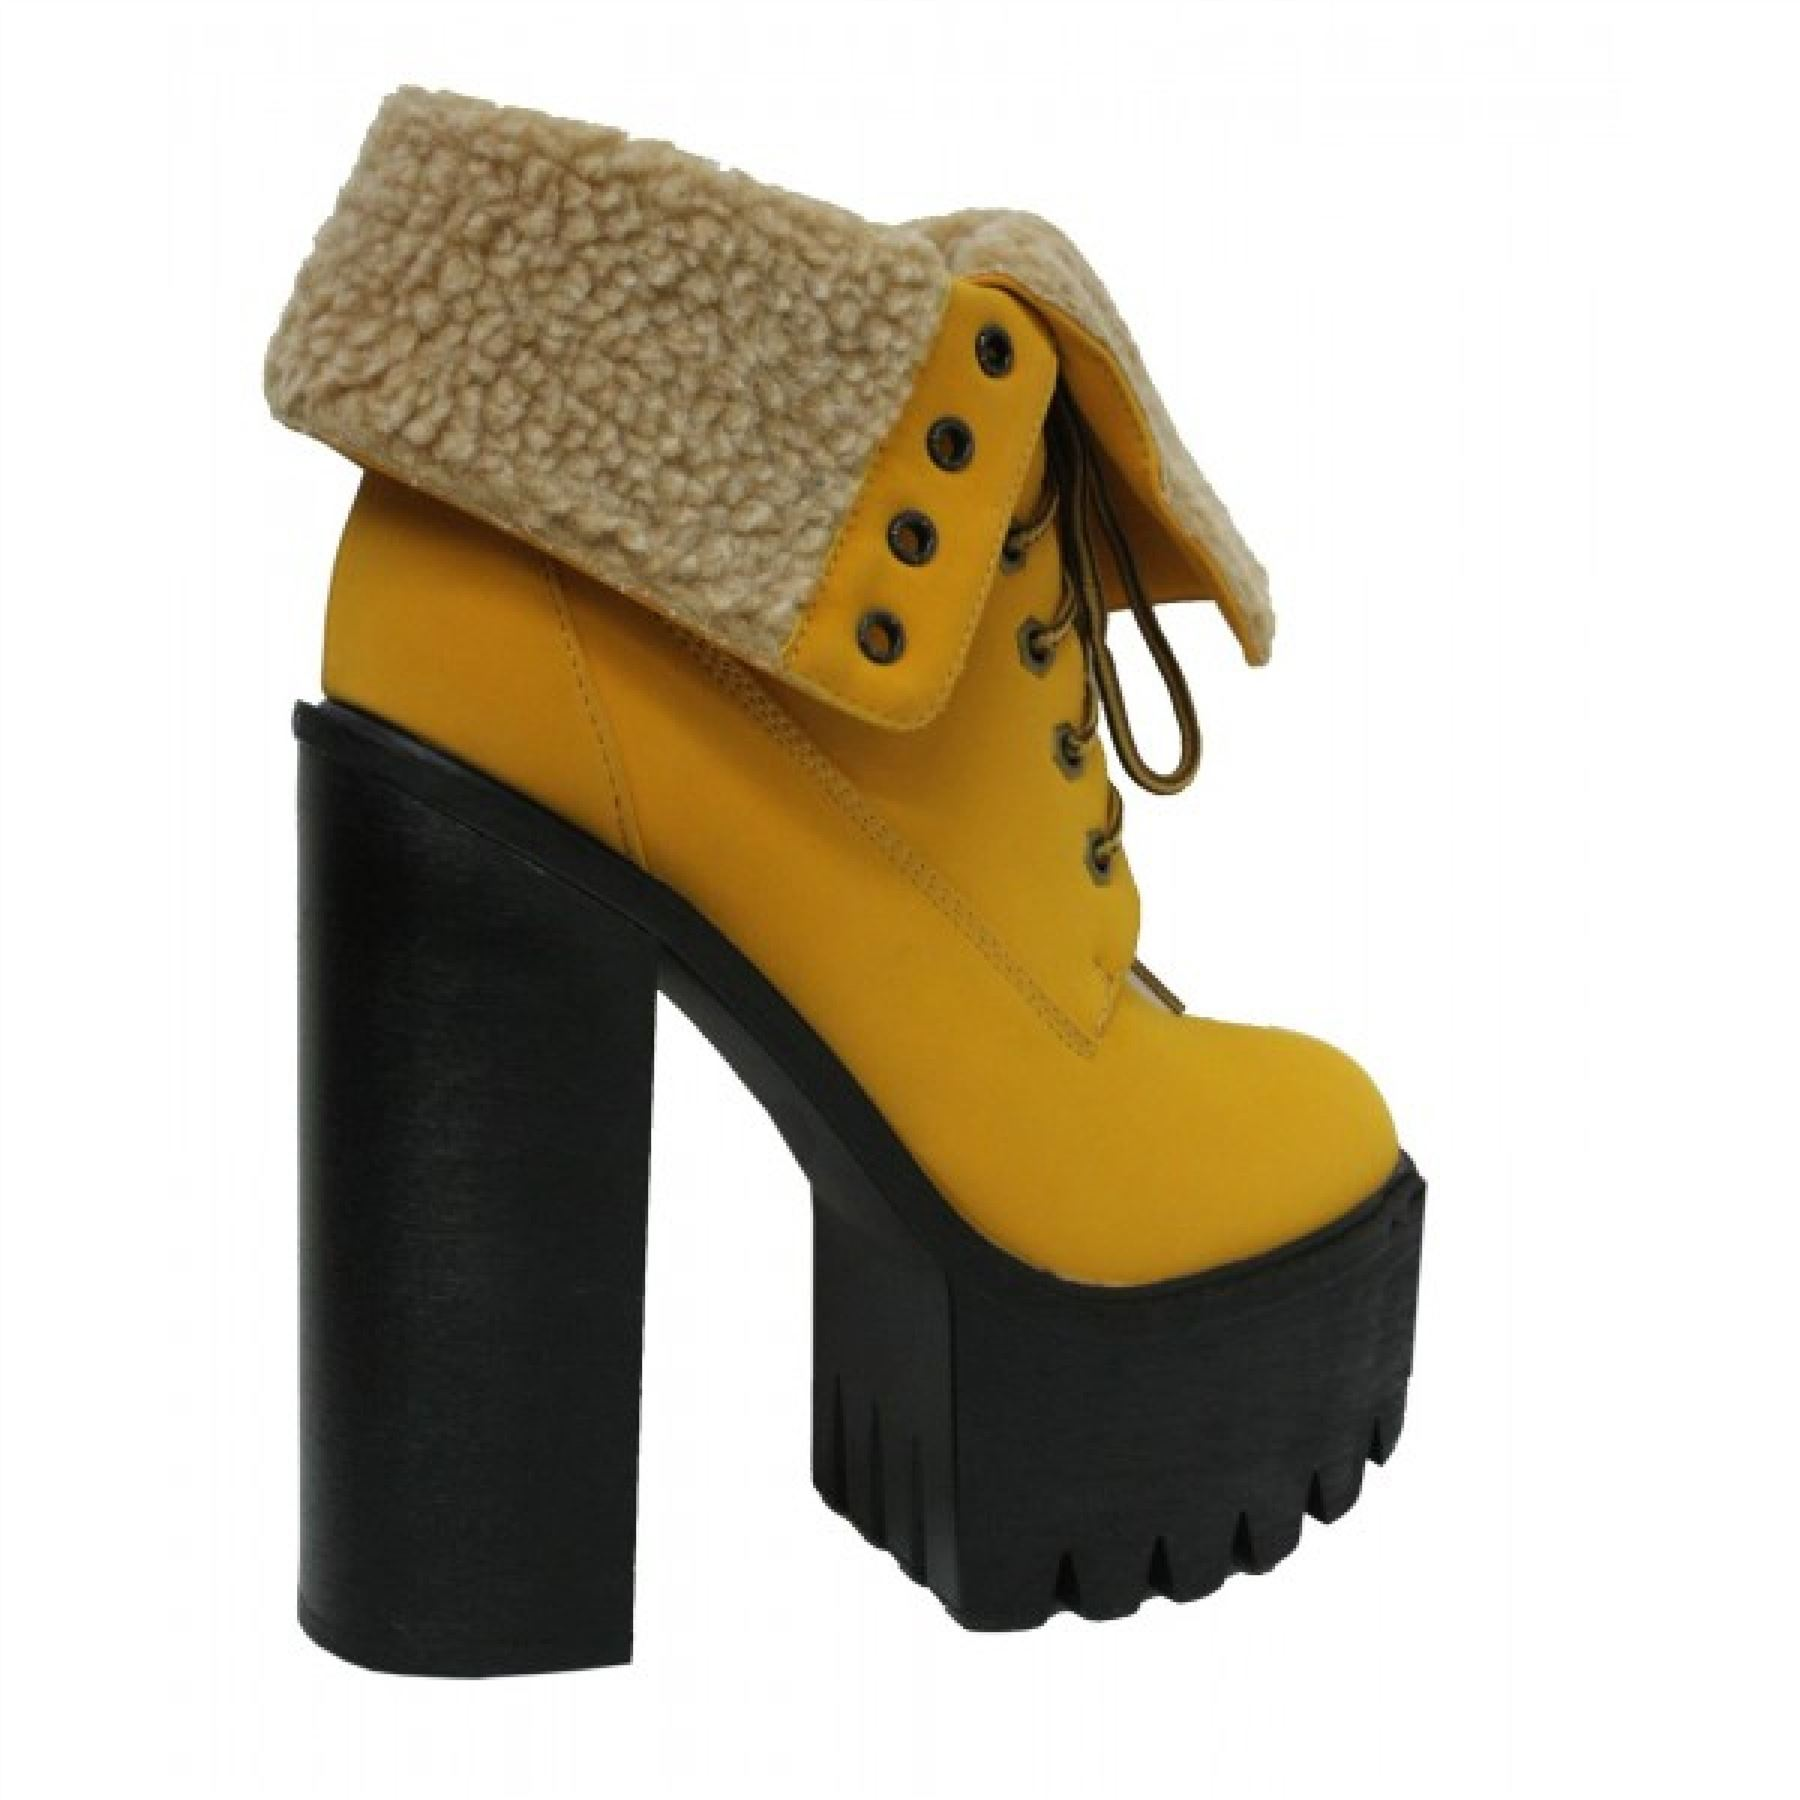 New-ladies-cleated-sole-platform-womens-lace-up-fur-chunky-high-heel-ankle-boot